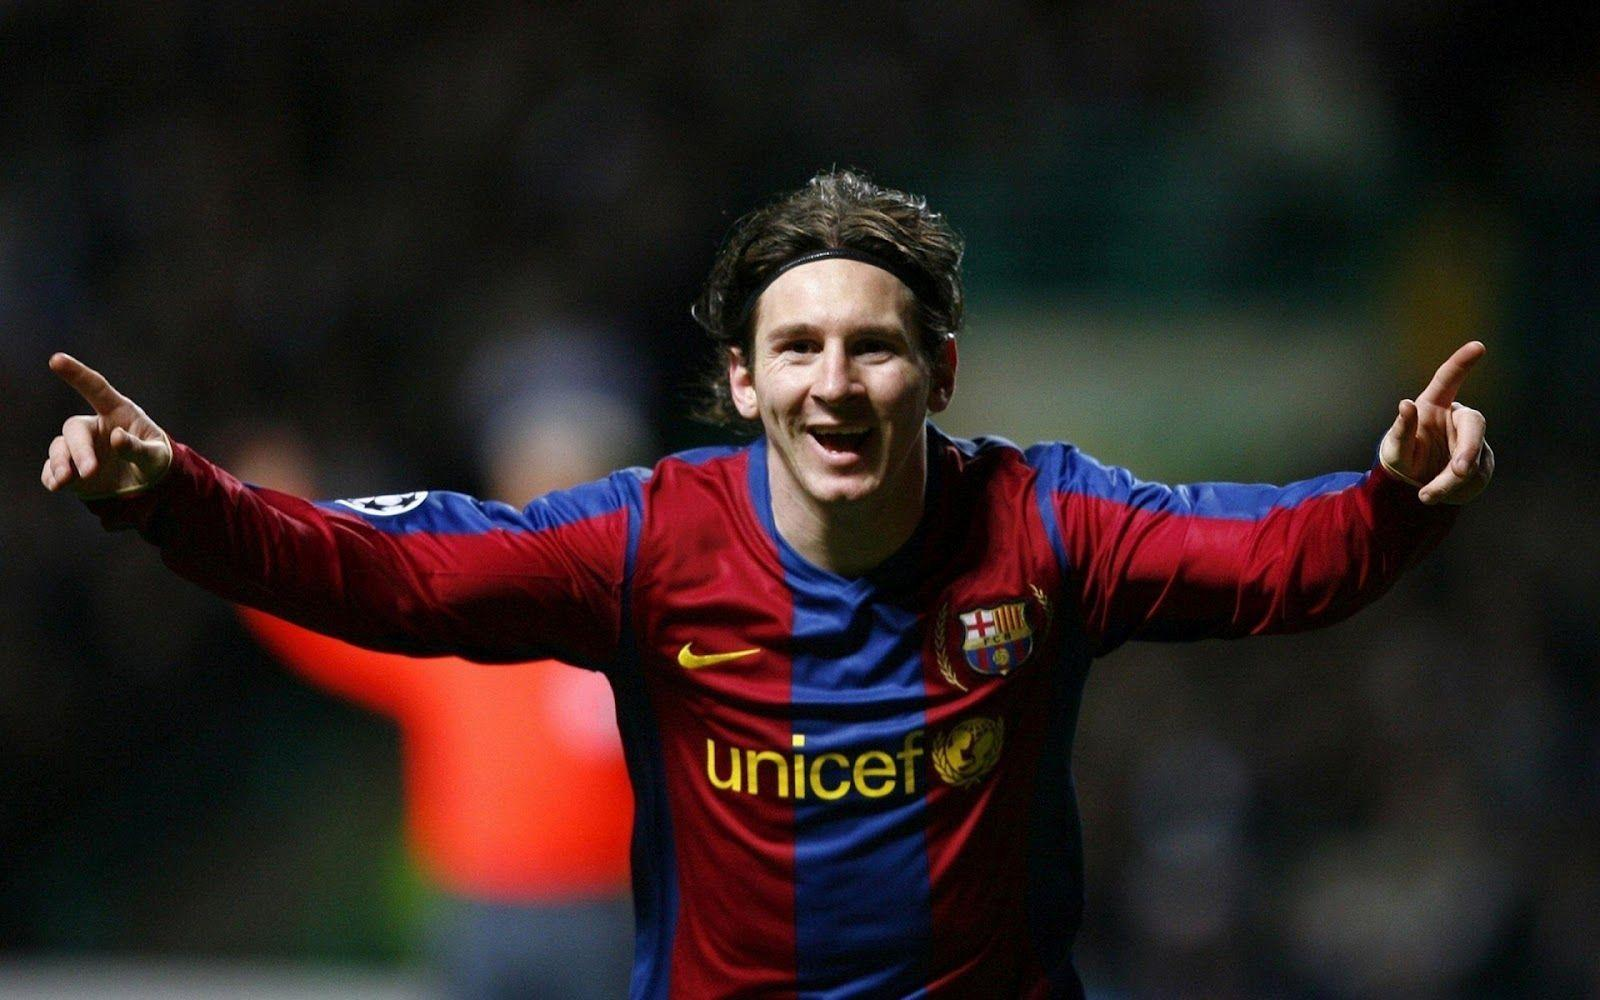 Messi hdwallpapers - Messi hd - Messi hd wallpapers lionel messi ...